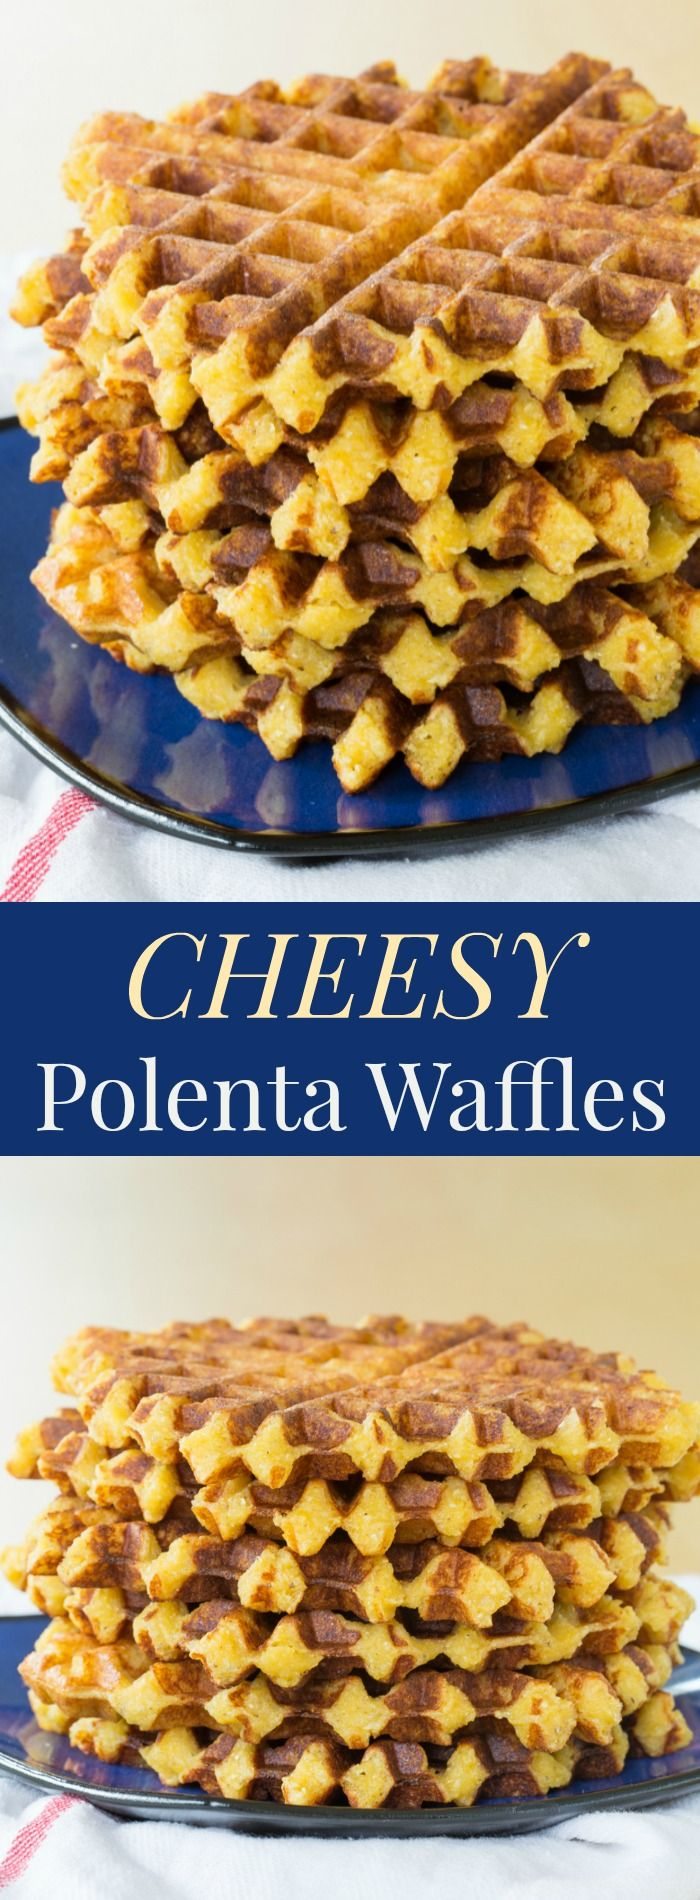 Cheesy Polenta Waffles - this savory waffle recipe makes a delicious side dish any time you'd serve polenta or even cheddar grits, or serve it for breakfast topped with eggs.   cupcakesandkalechips.com   gluten free